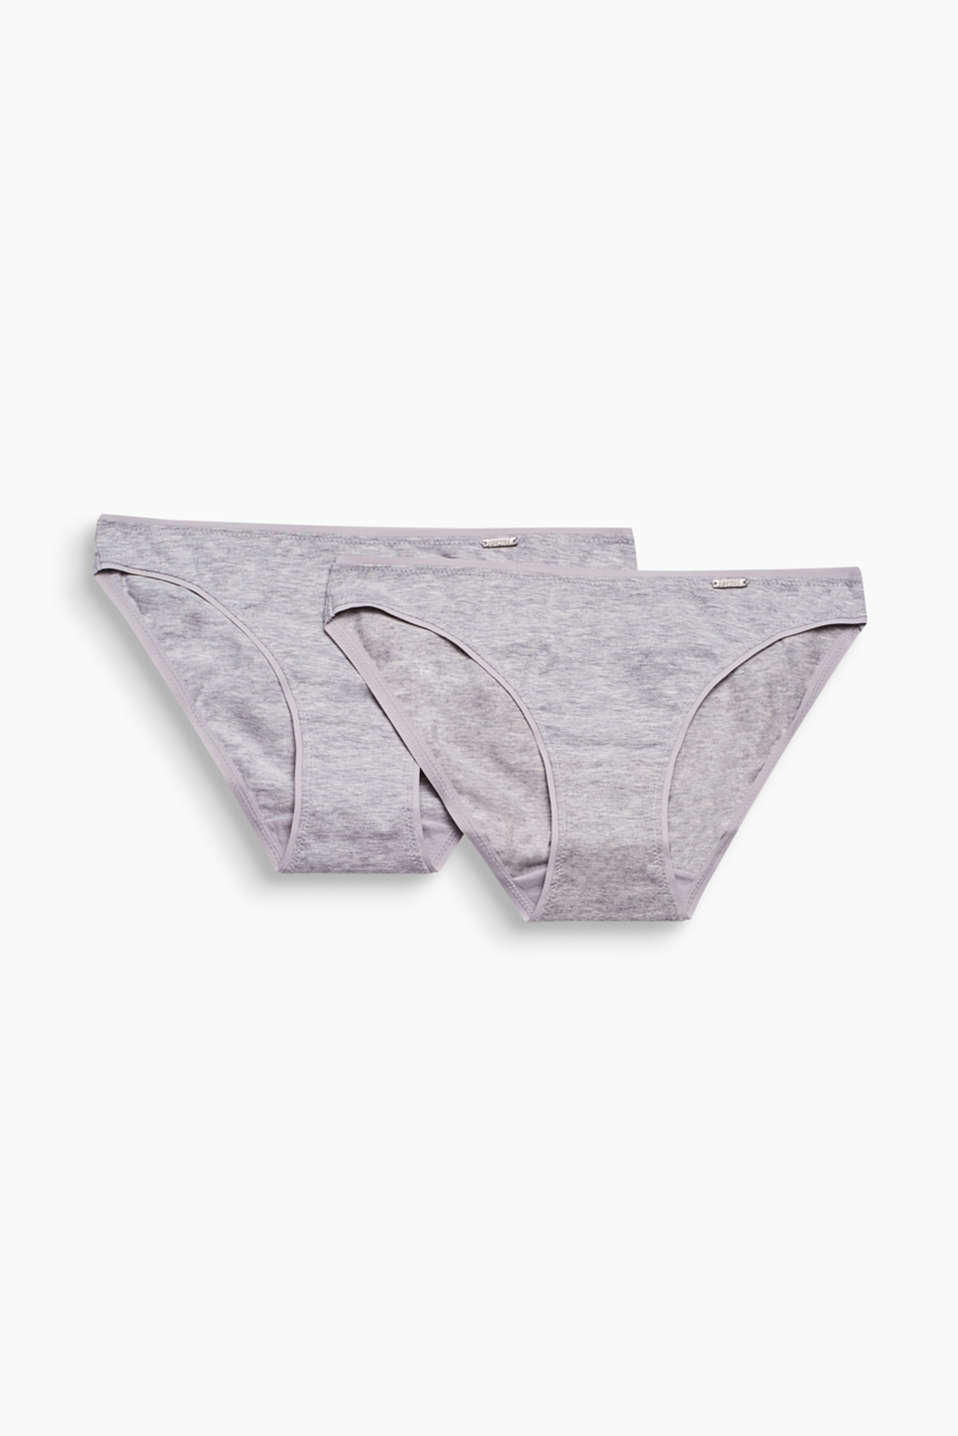 Collection: BROOME - hipster briefs in melange cotton jersey with added stretch for comfort